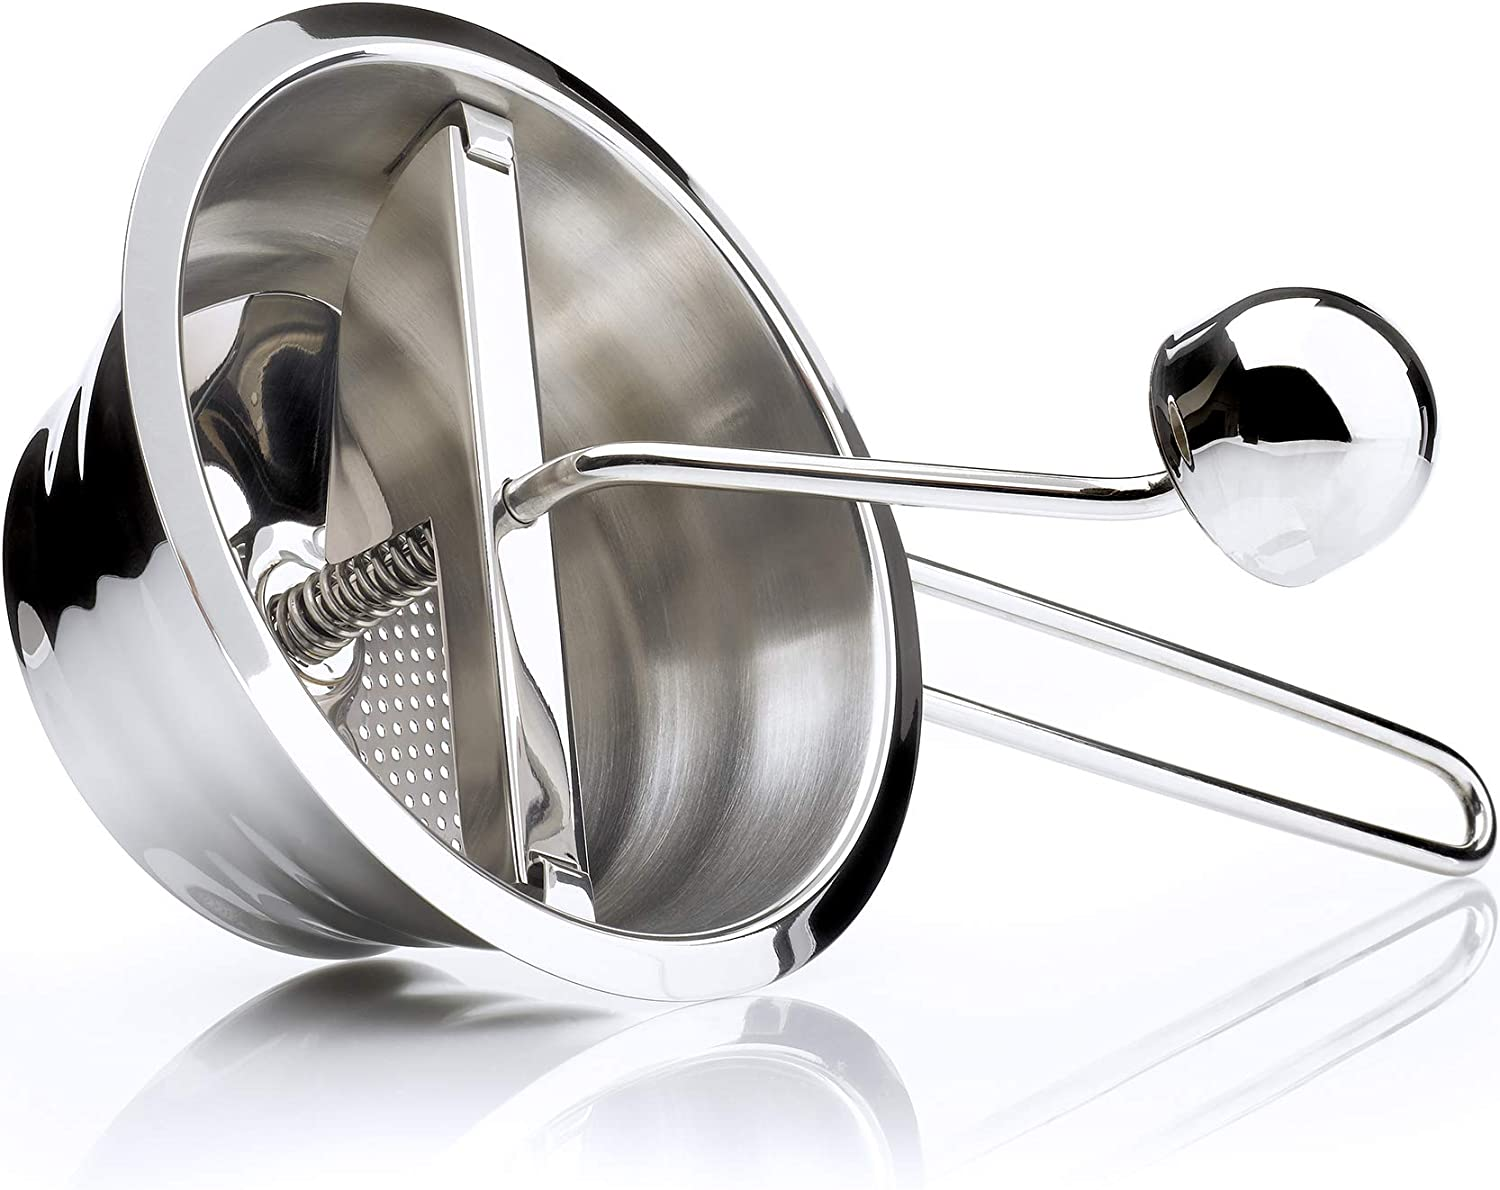 Kilo HA49 Small Purée Mill/Mouli, for Making Homemade Baby Food and Puree Vegetable for Soups-Stainless-Steel. 13cm Diameter